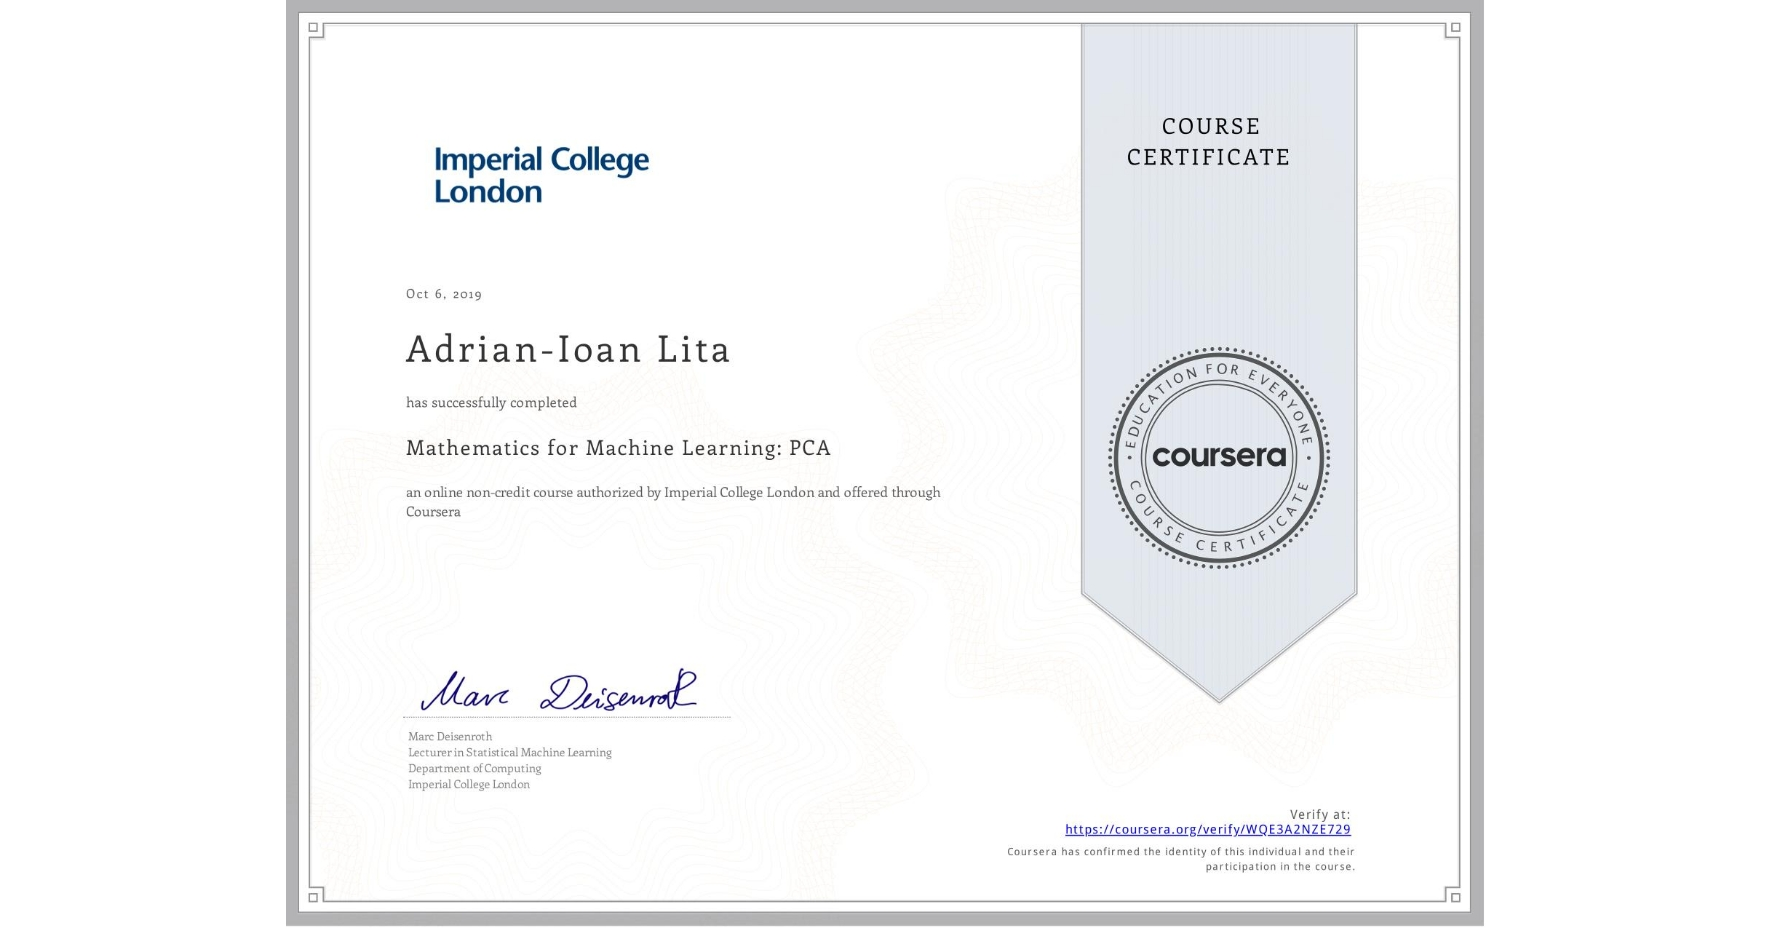 View certificate for Adrian-Ioan Lita, Mathematics for Machine Learning: PCA, an online non-credit course authorized by Imperial College London and offered through Coursera